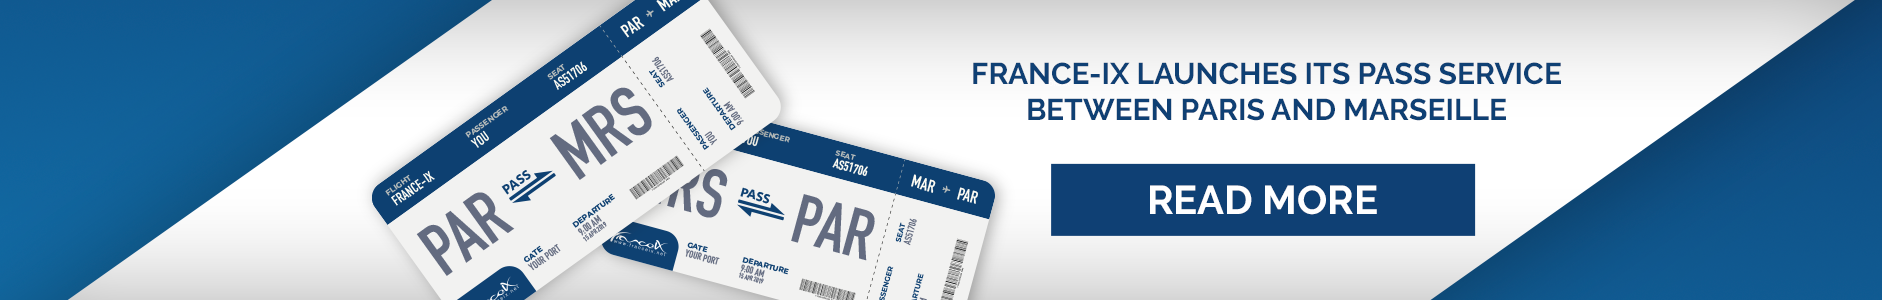 France-IX launches its PASS service between Paris and Marseille